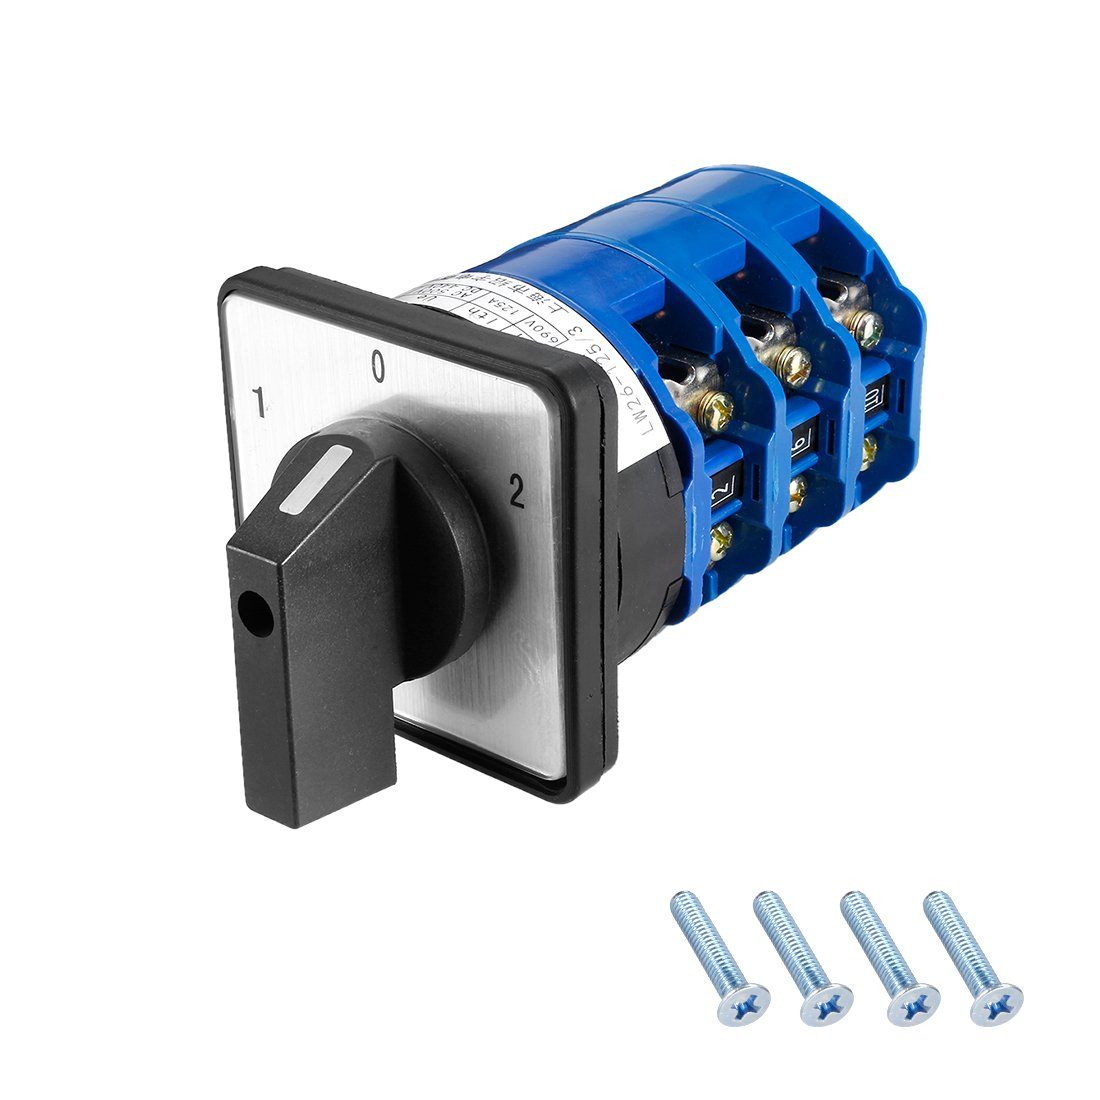 uxcell Changeover Switch 3 Position Rotary Selector Cam Switch Panel Mount 24 Terminal Latching Ui 690V Ith 125A